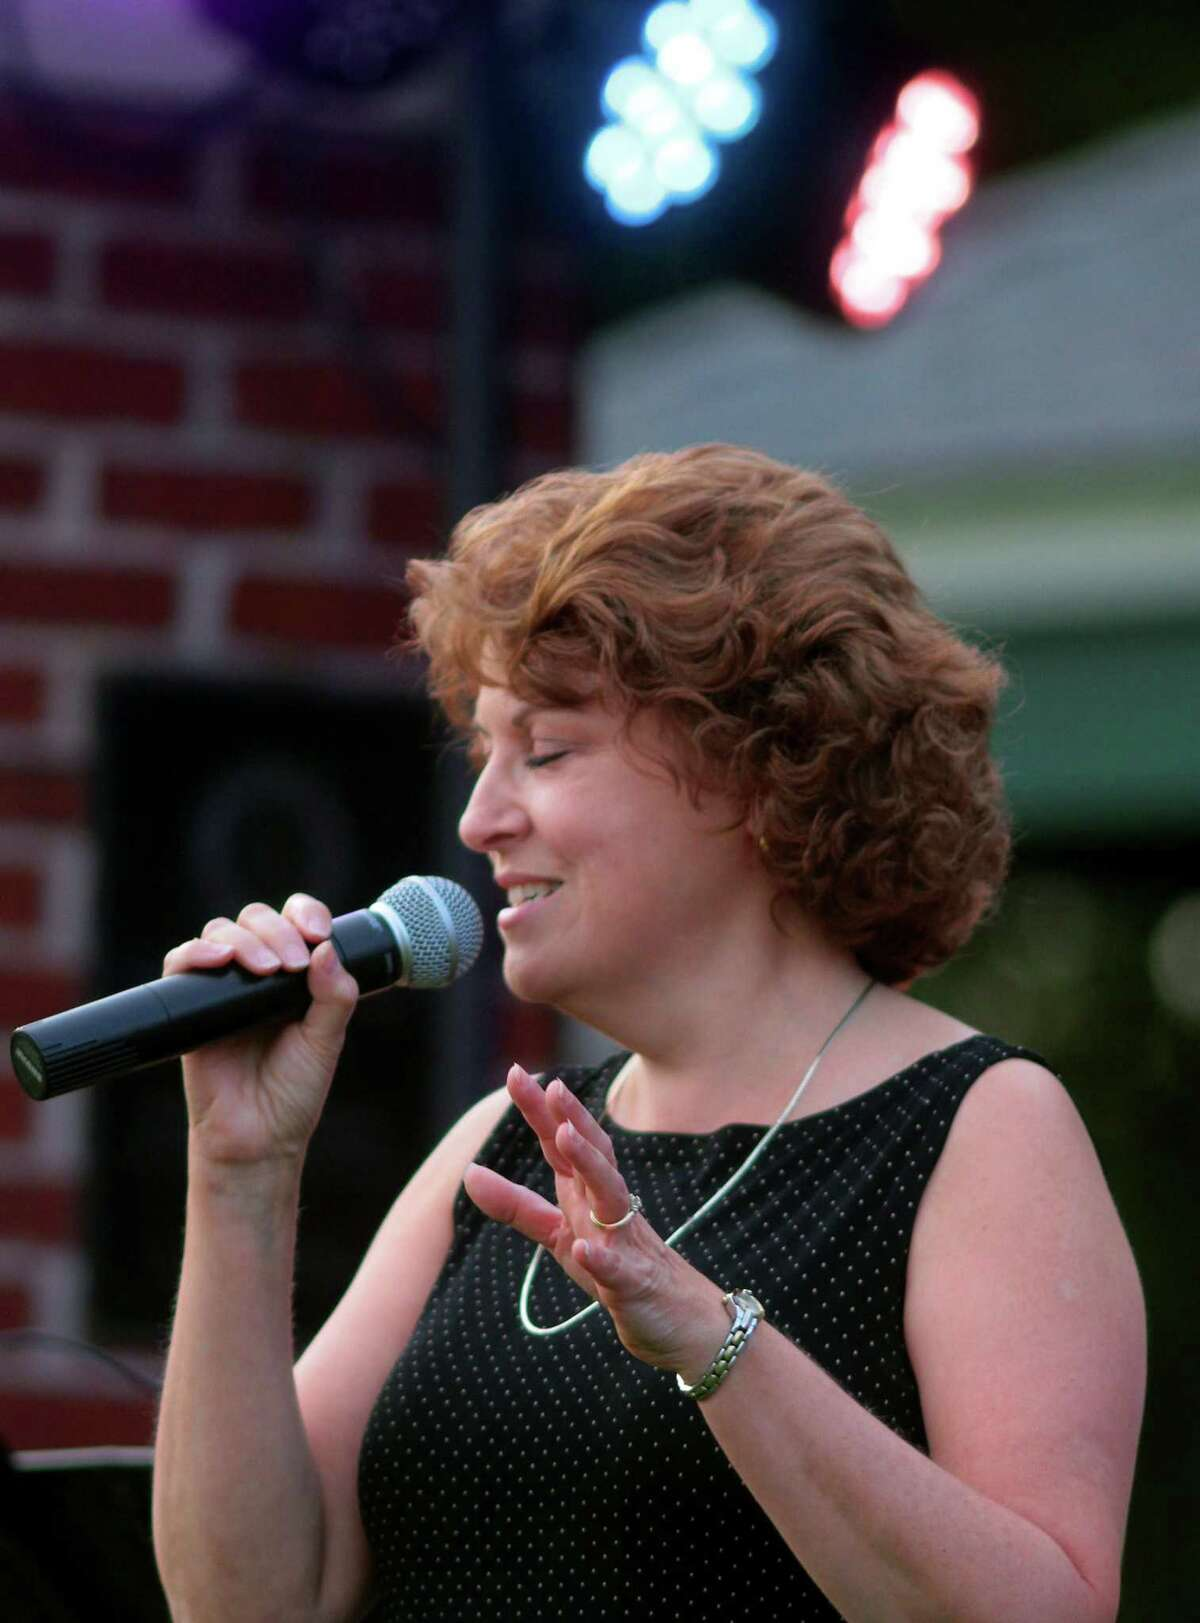 The Little Big Band's Joyce Medling performs during Shelton's Summer Concert series at Riverview Park in Shelton, Conn., on Wednesday Aug.26, 2020.